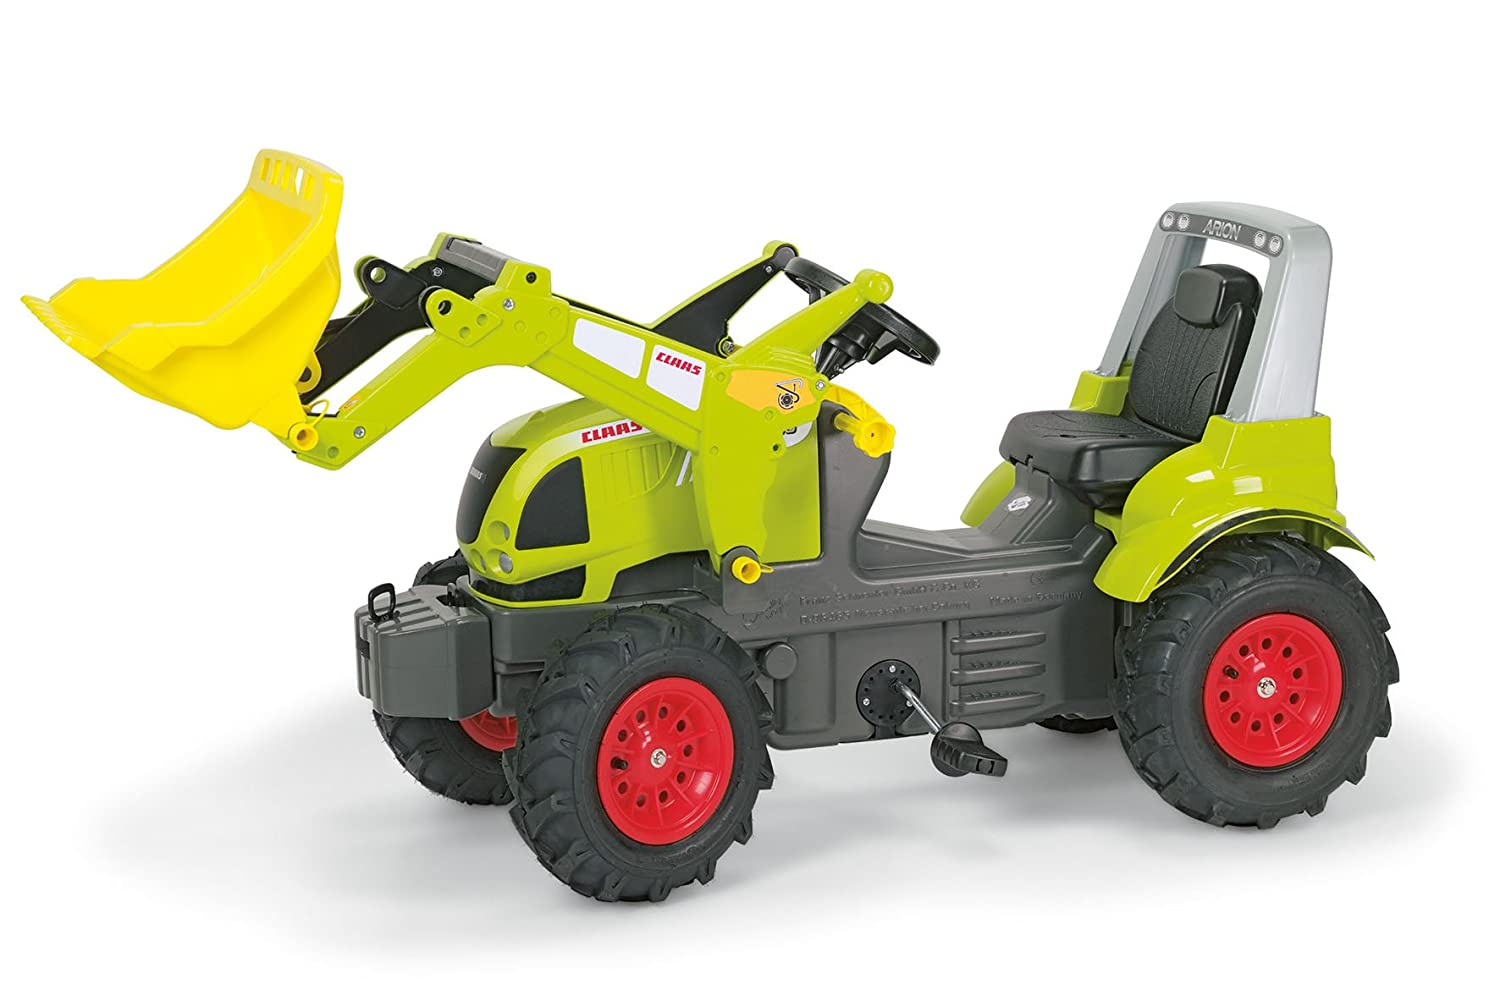 Trettraktor Claas - Rolly Toys Claas Arion